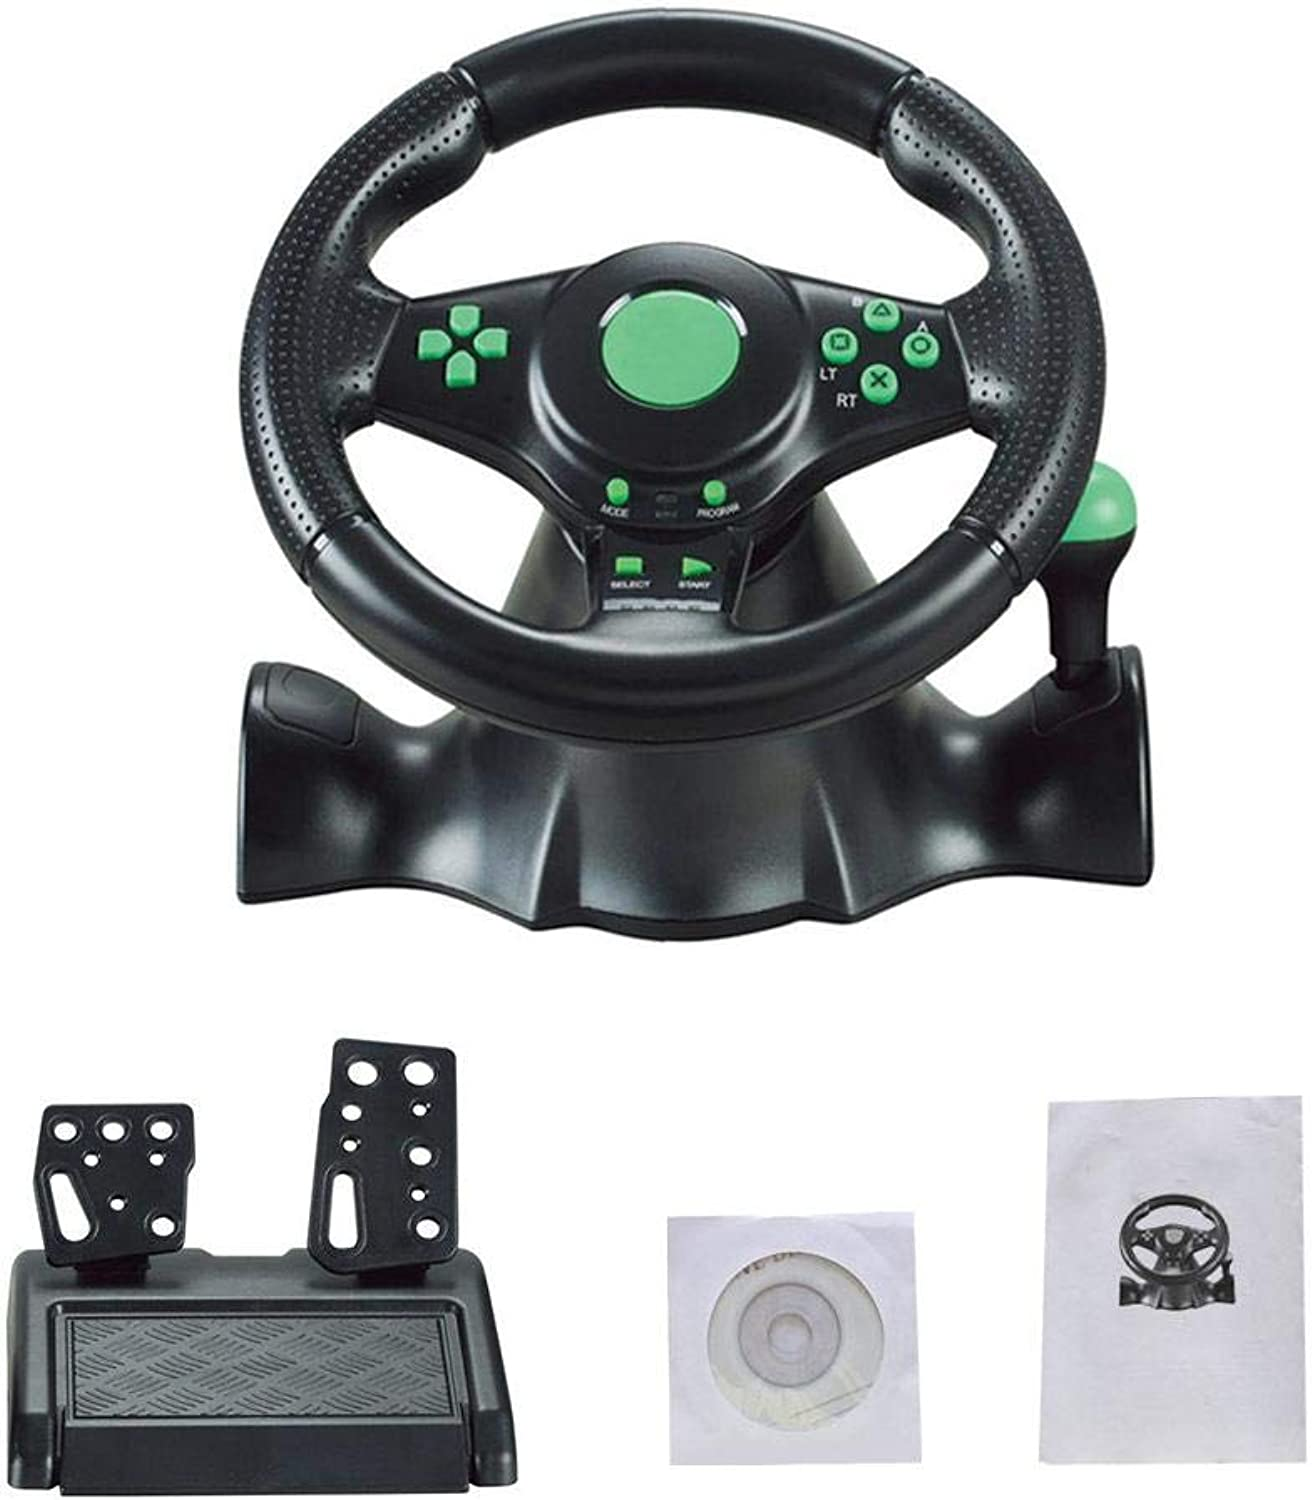 FT22 Racing Wheel, 180 Degree Racing Steering Computer Game Steering Wheel with Responsive Pedals Simulation Racing Driving Toy for PC PS3 PS4 XBOX-ONE